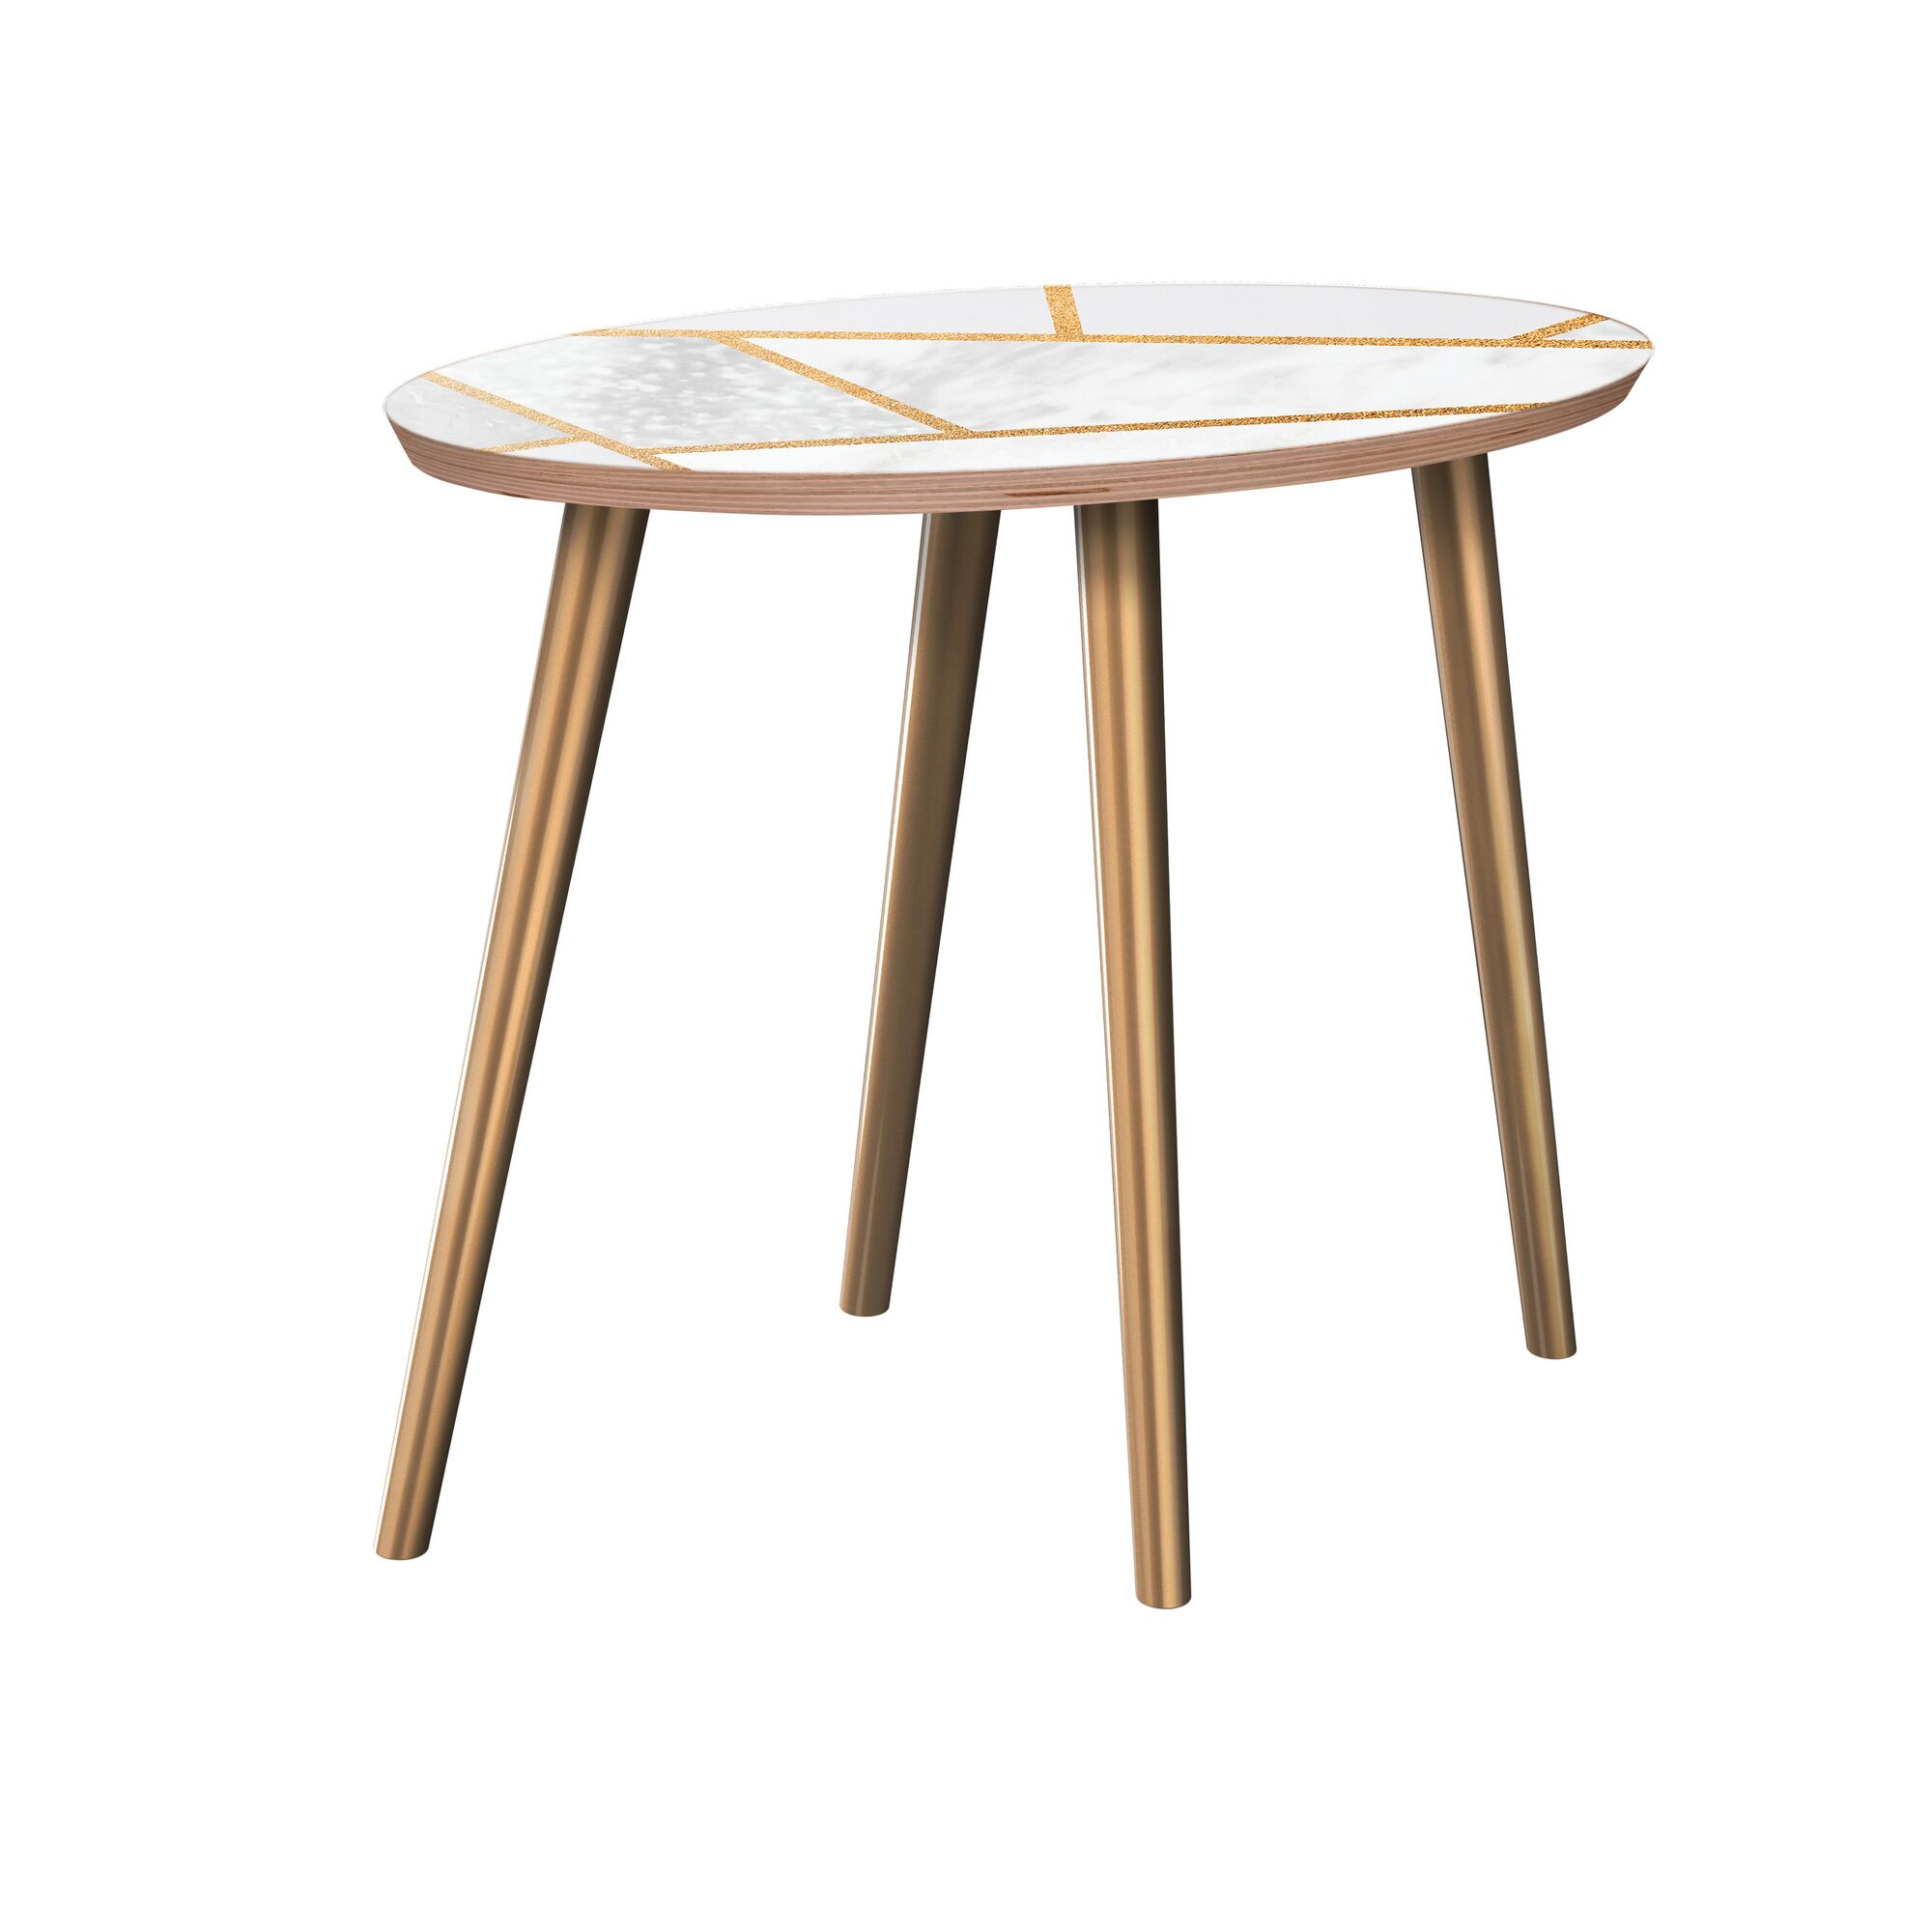 Turgeon End Table Table Base Color: Brass, Table Top Color: Walnut/White